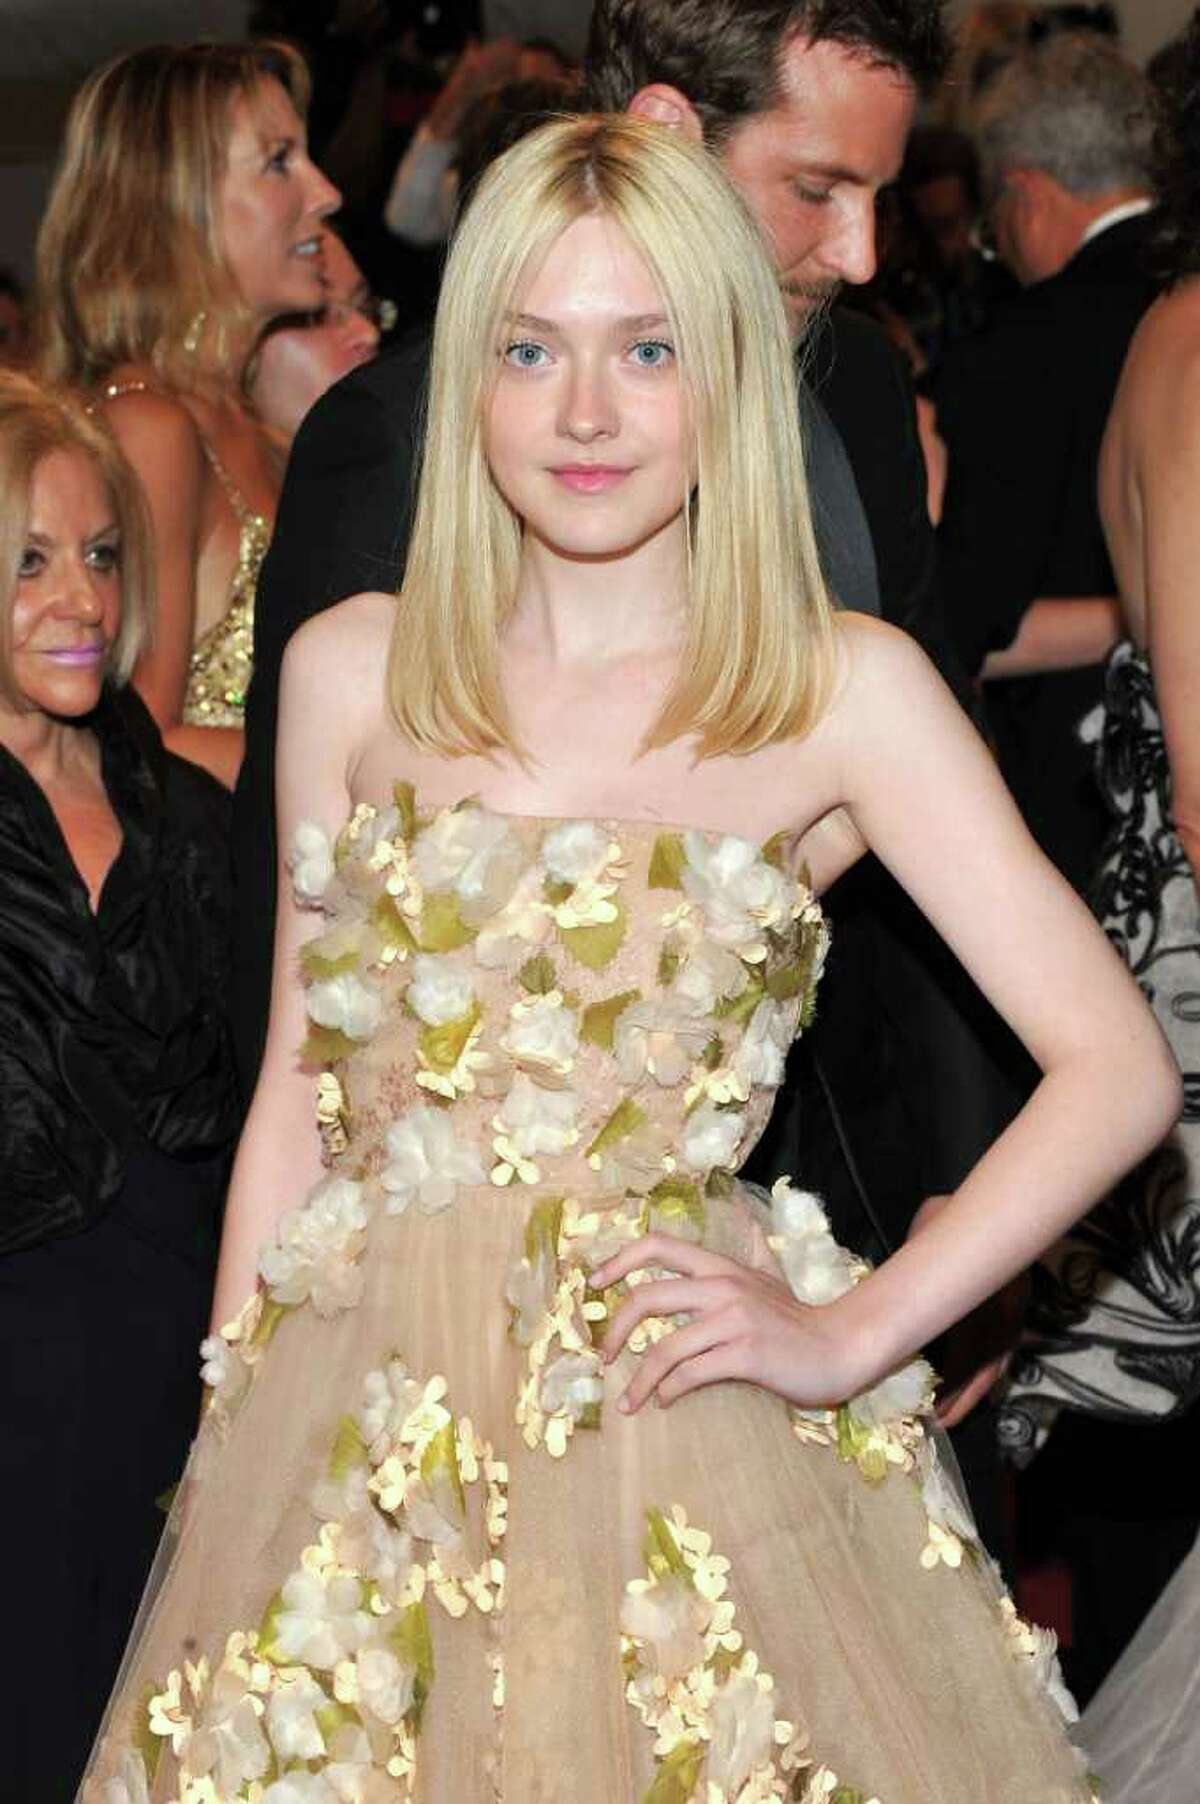 Dakota Fanning, actress